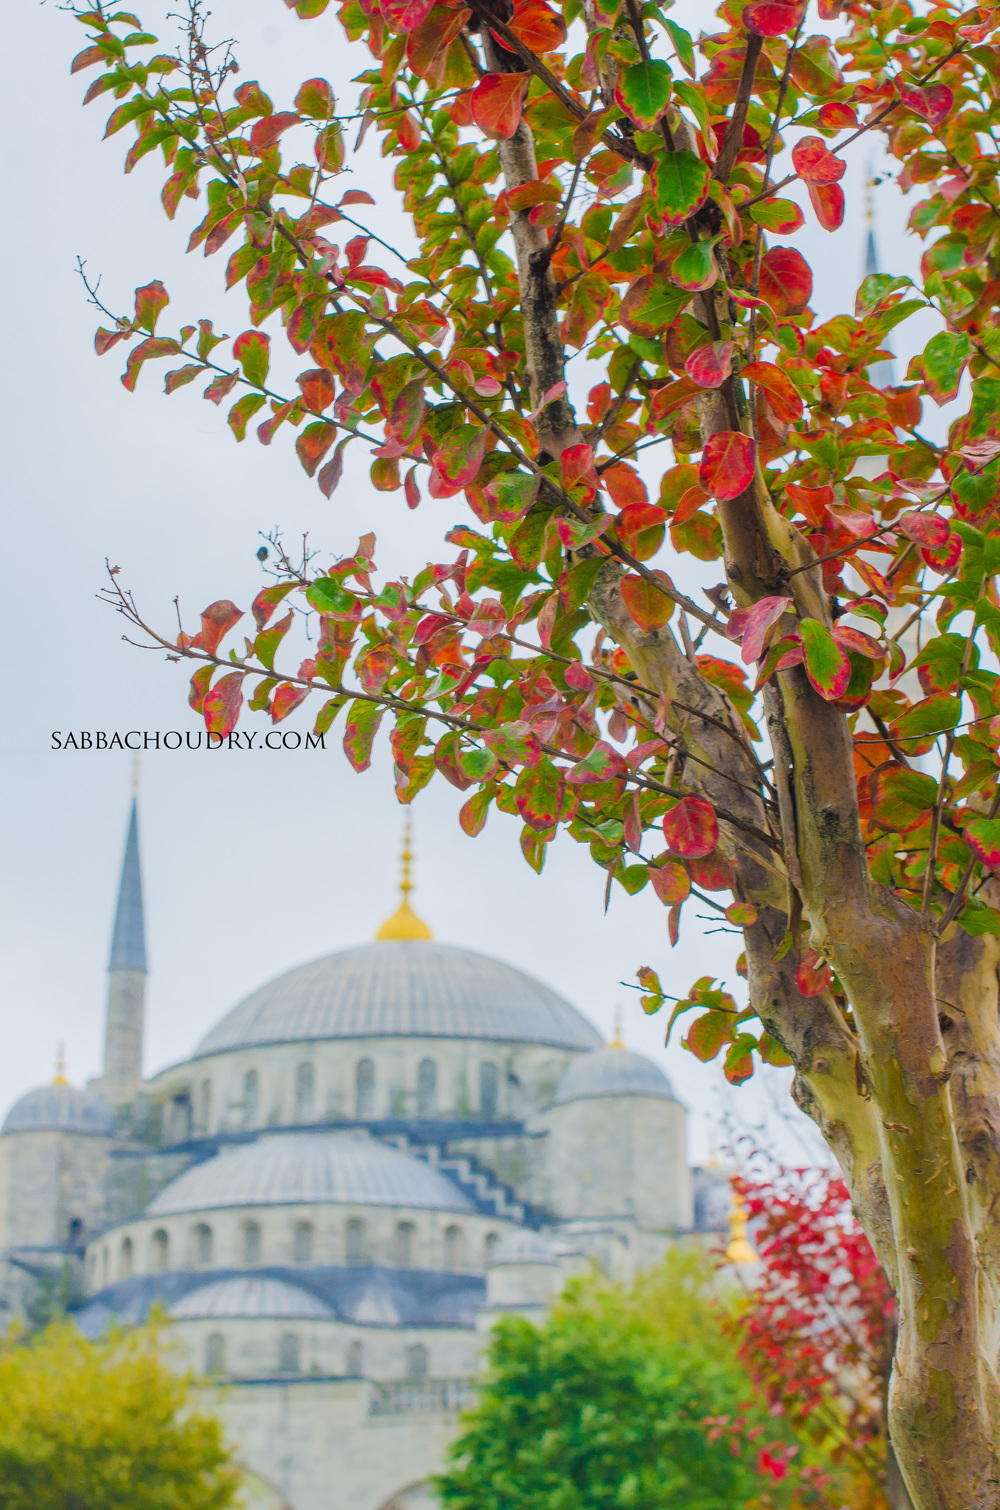 Autumn colours surround the Blue Mosque